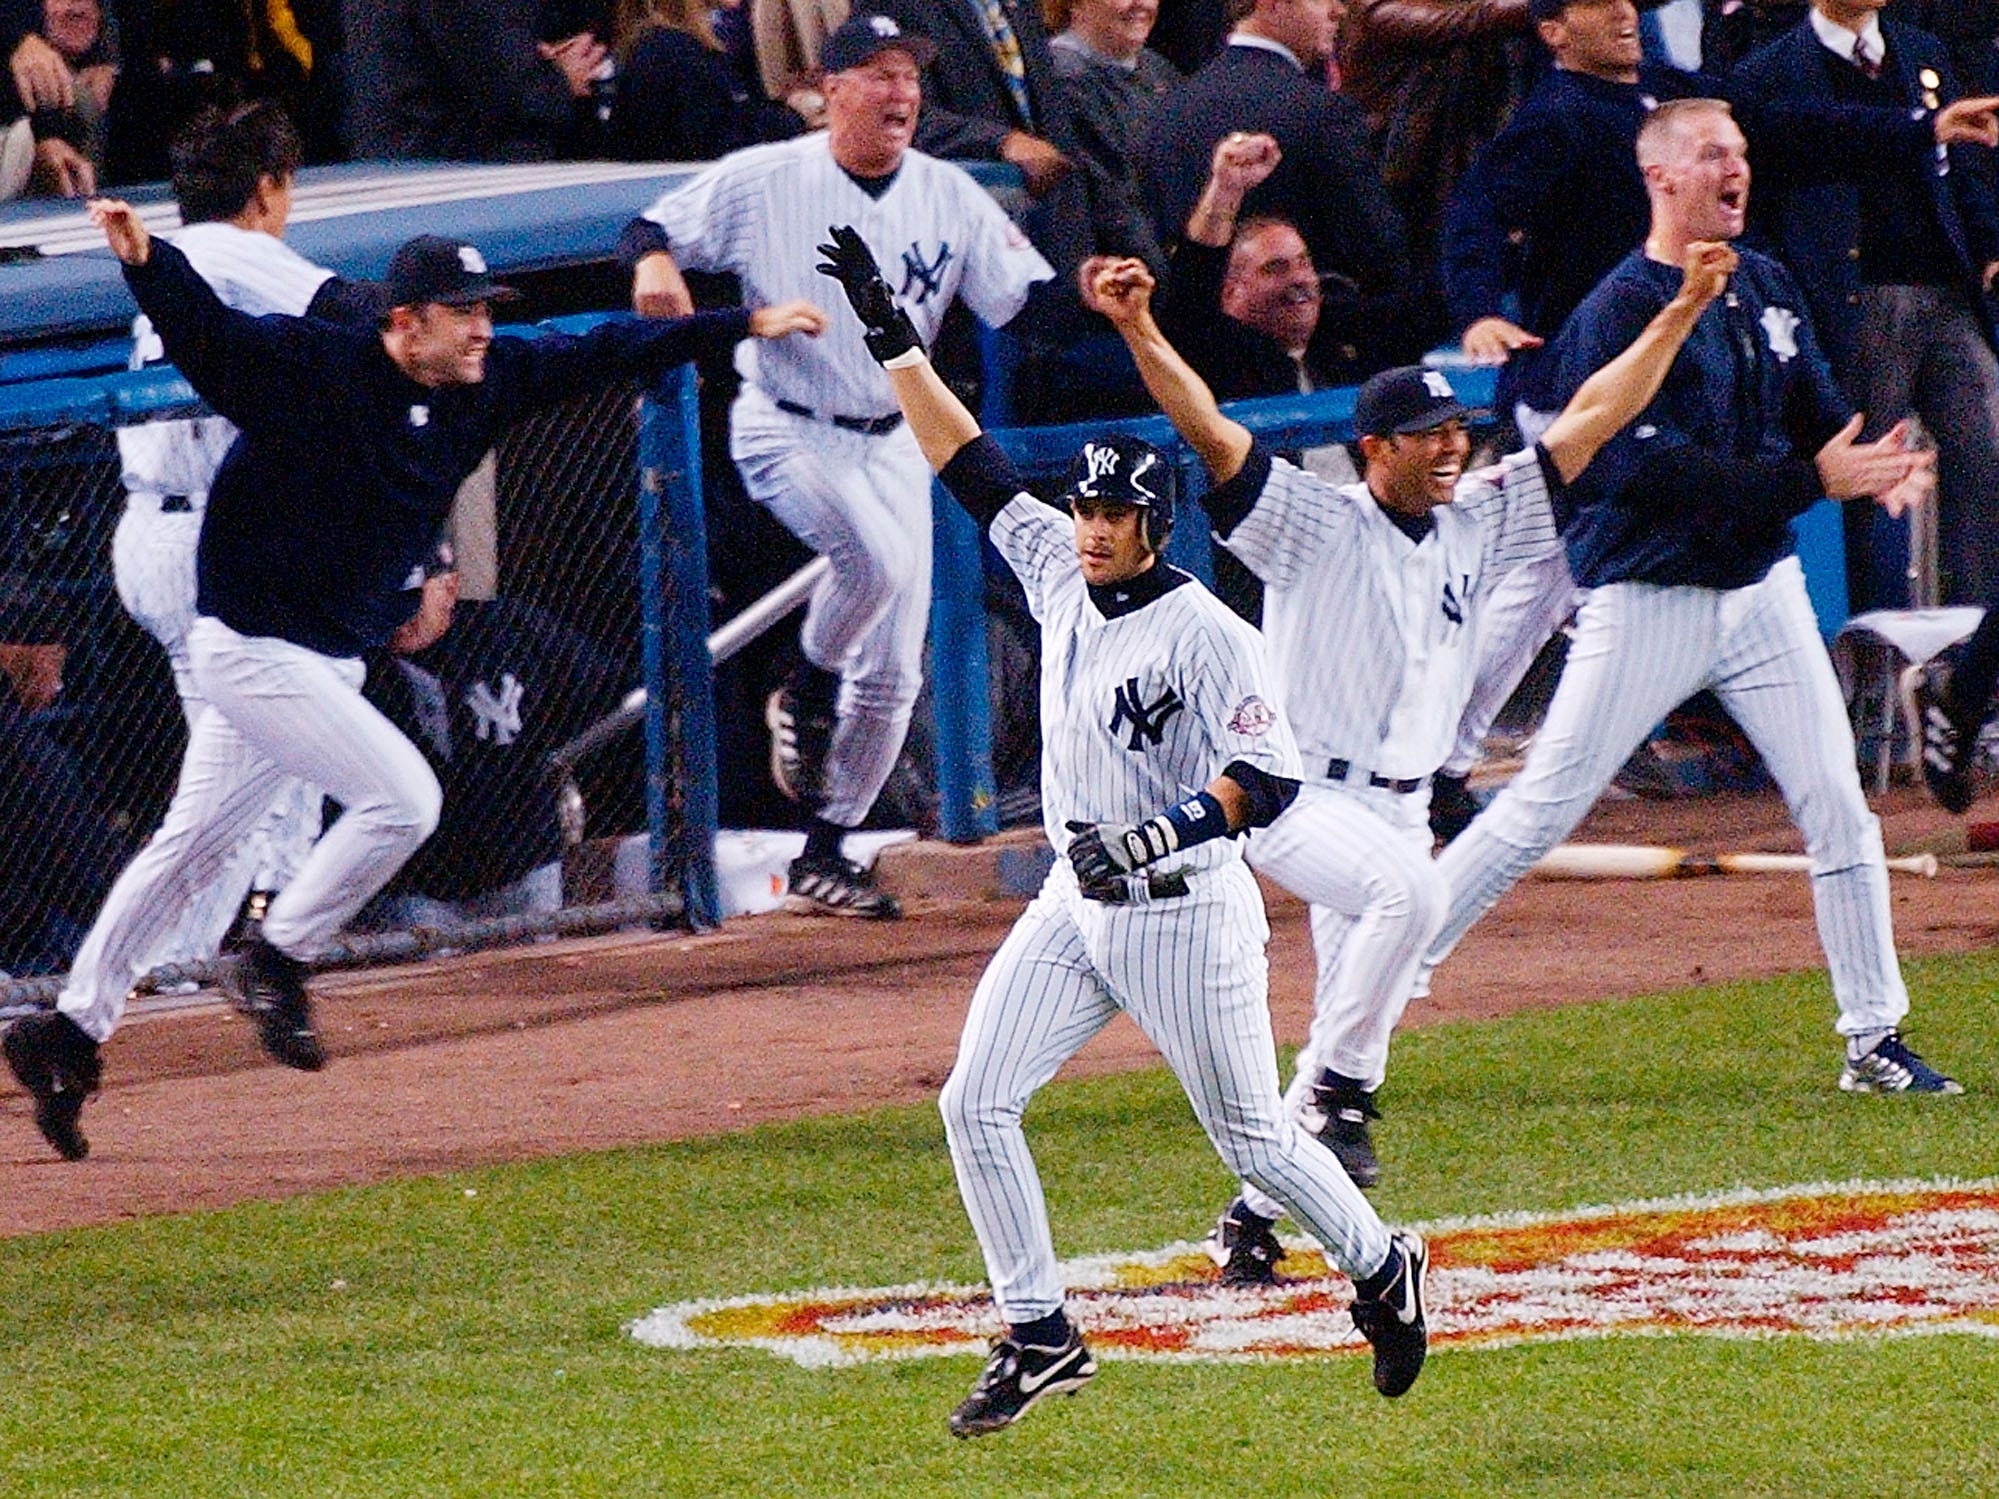 2003 ALCS Game 7: Aaron Boone hit a walk-off solo homer in the 11th inning against the Red Sox, putting the Yankees in the World Series for the sixth time in eight years.